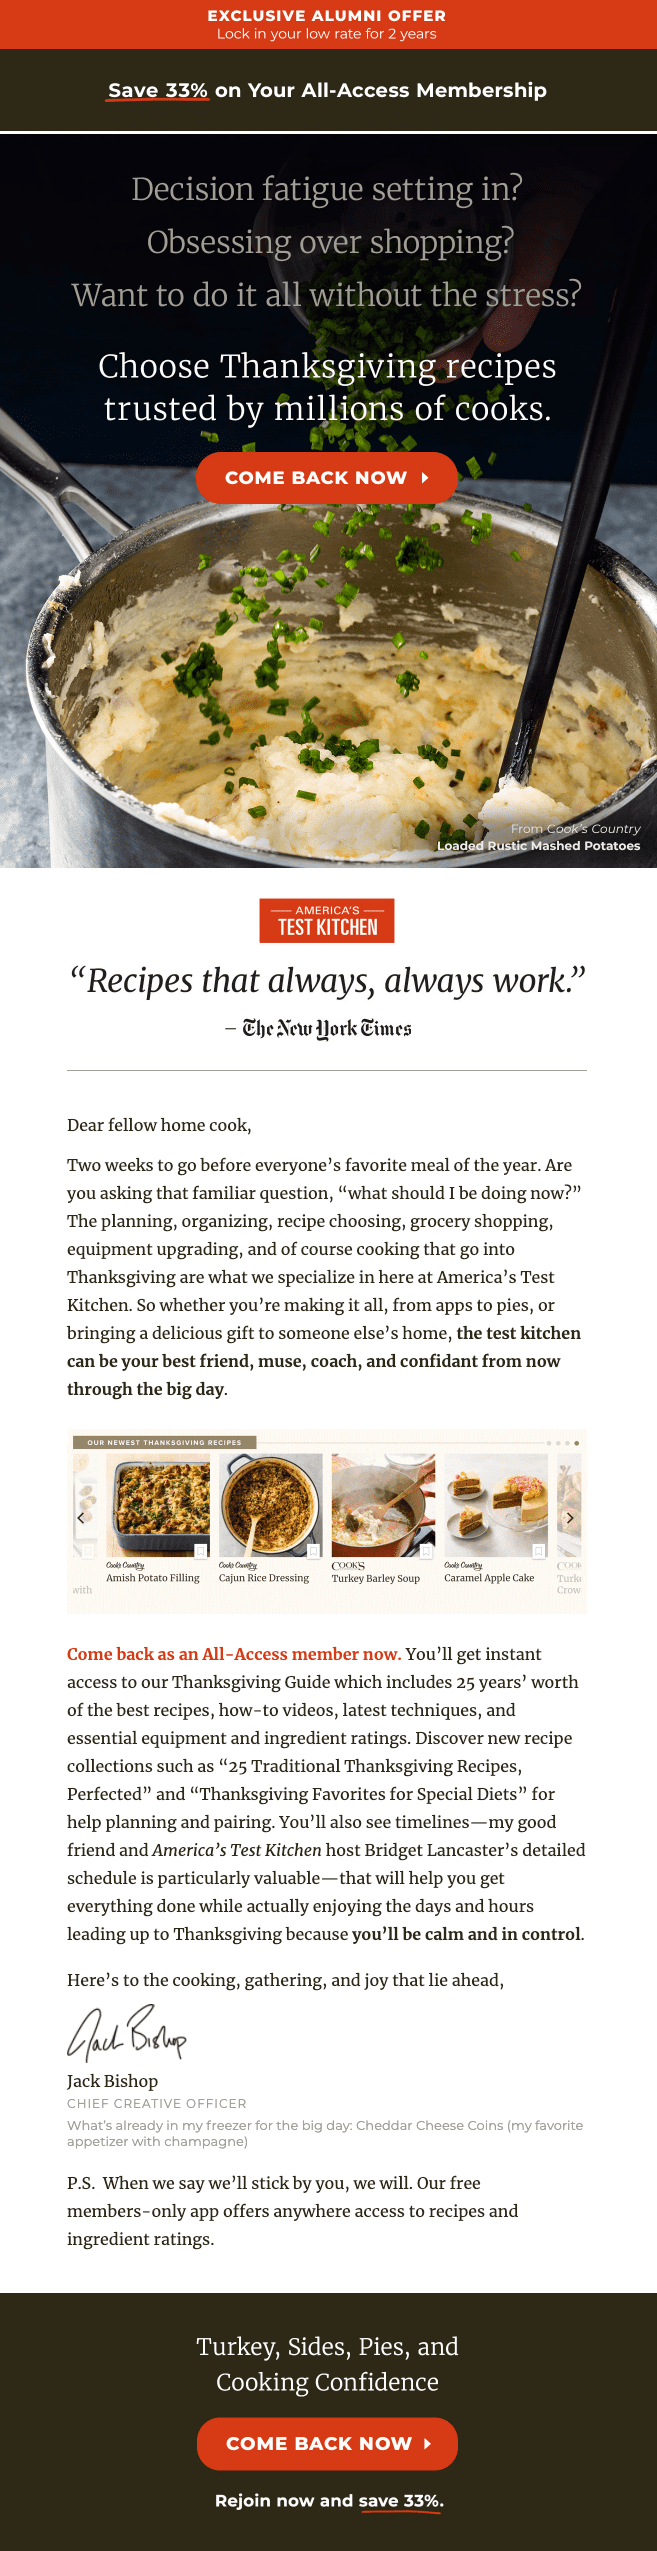 America's Test Kitchen reactivation email